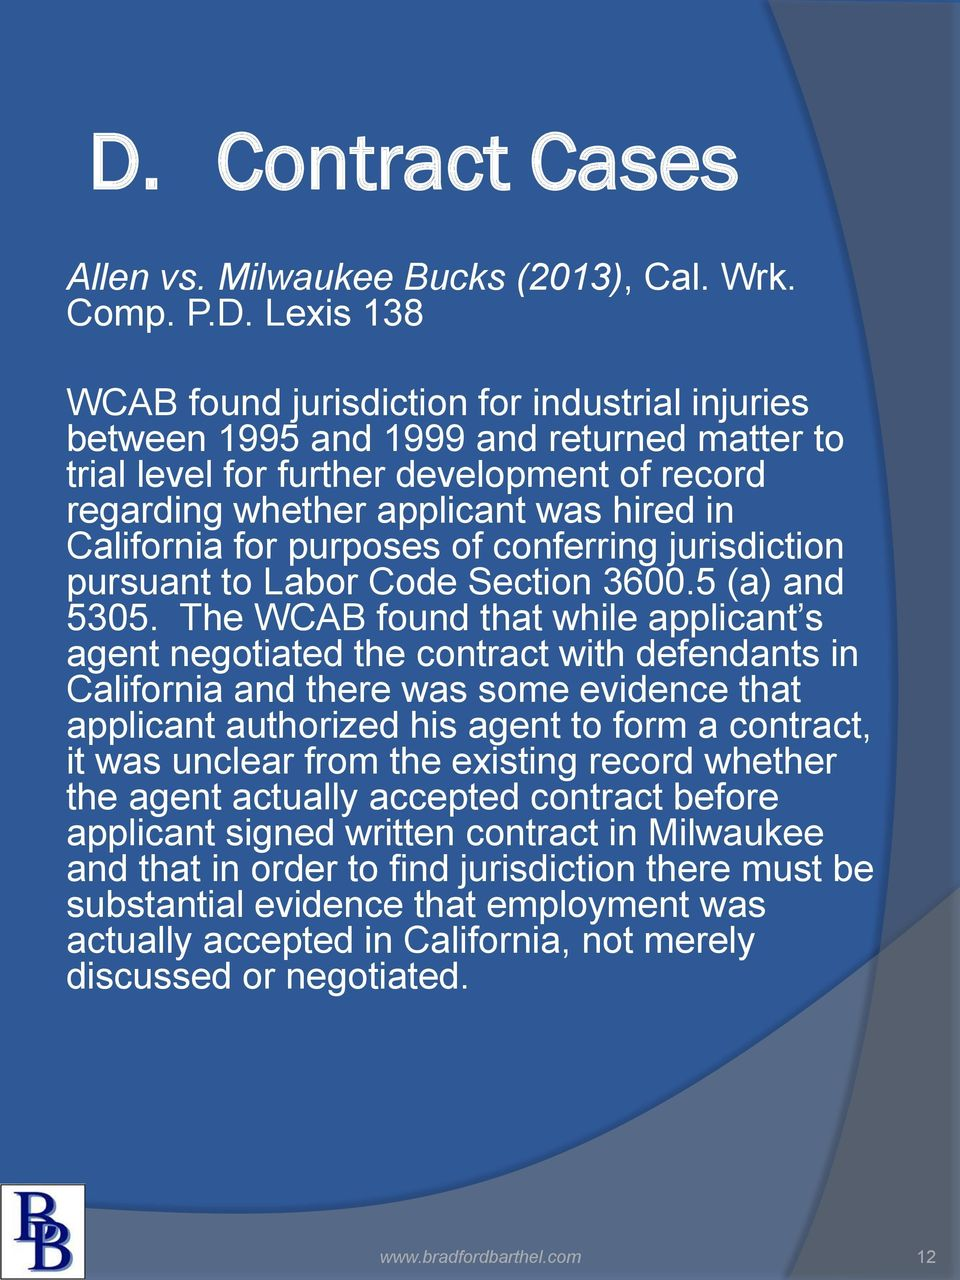 The WCAB found that while applicant s agent negotiated the contract with defendants in California and there was some evidence that applicant authorized his agent to form a contract, it was unclear